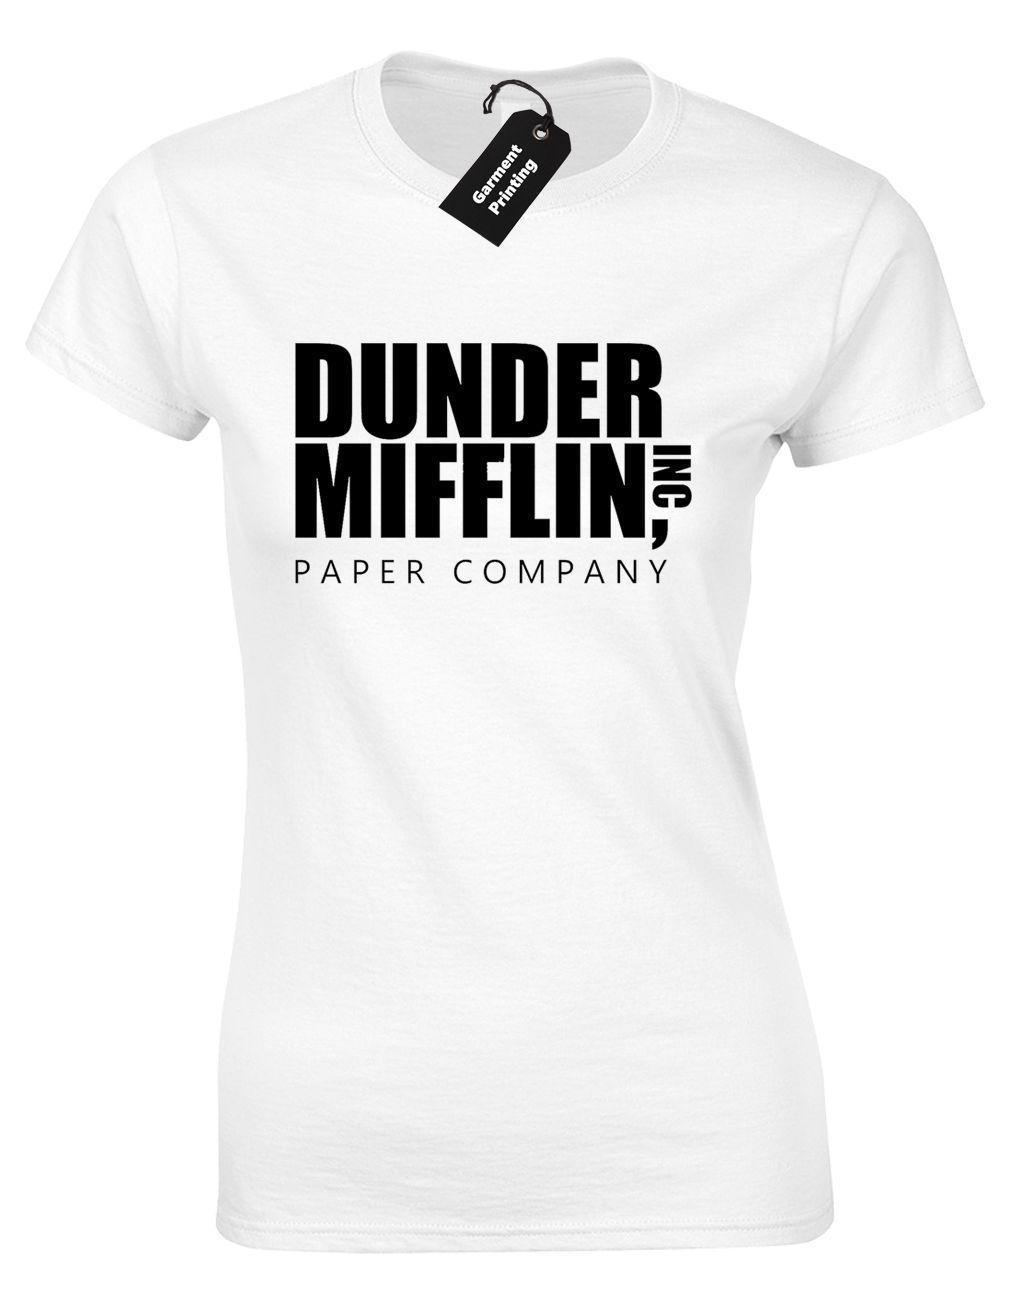 DUNDER MIFFLIN LADIES T SHIRT THE OFFICE MICHAEL SCOTT DWIGHT FUNNY QUALITY  Fun Tee Shirts Silly T Shirts From Yuxin03 0328bbb40